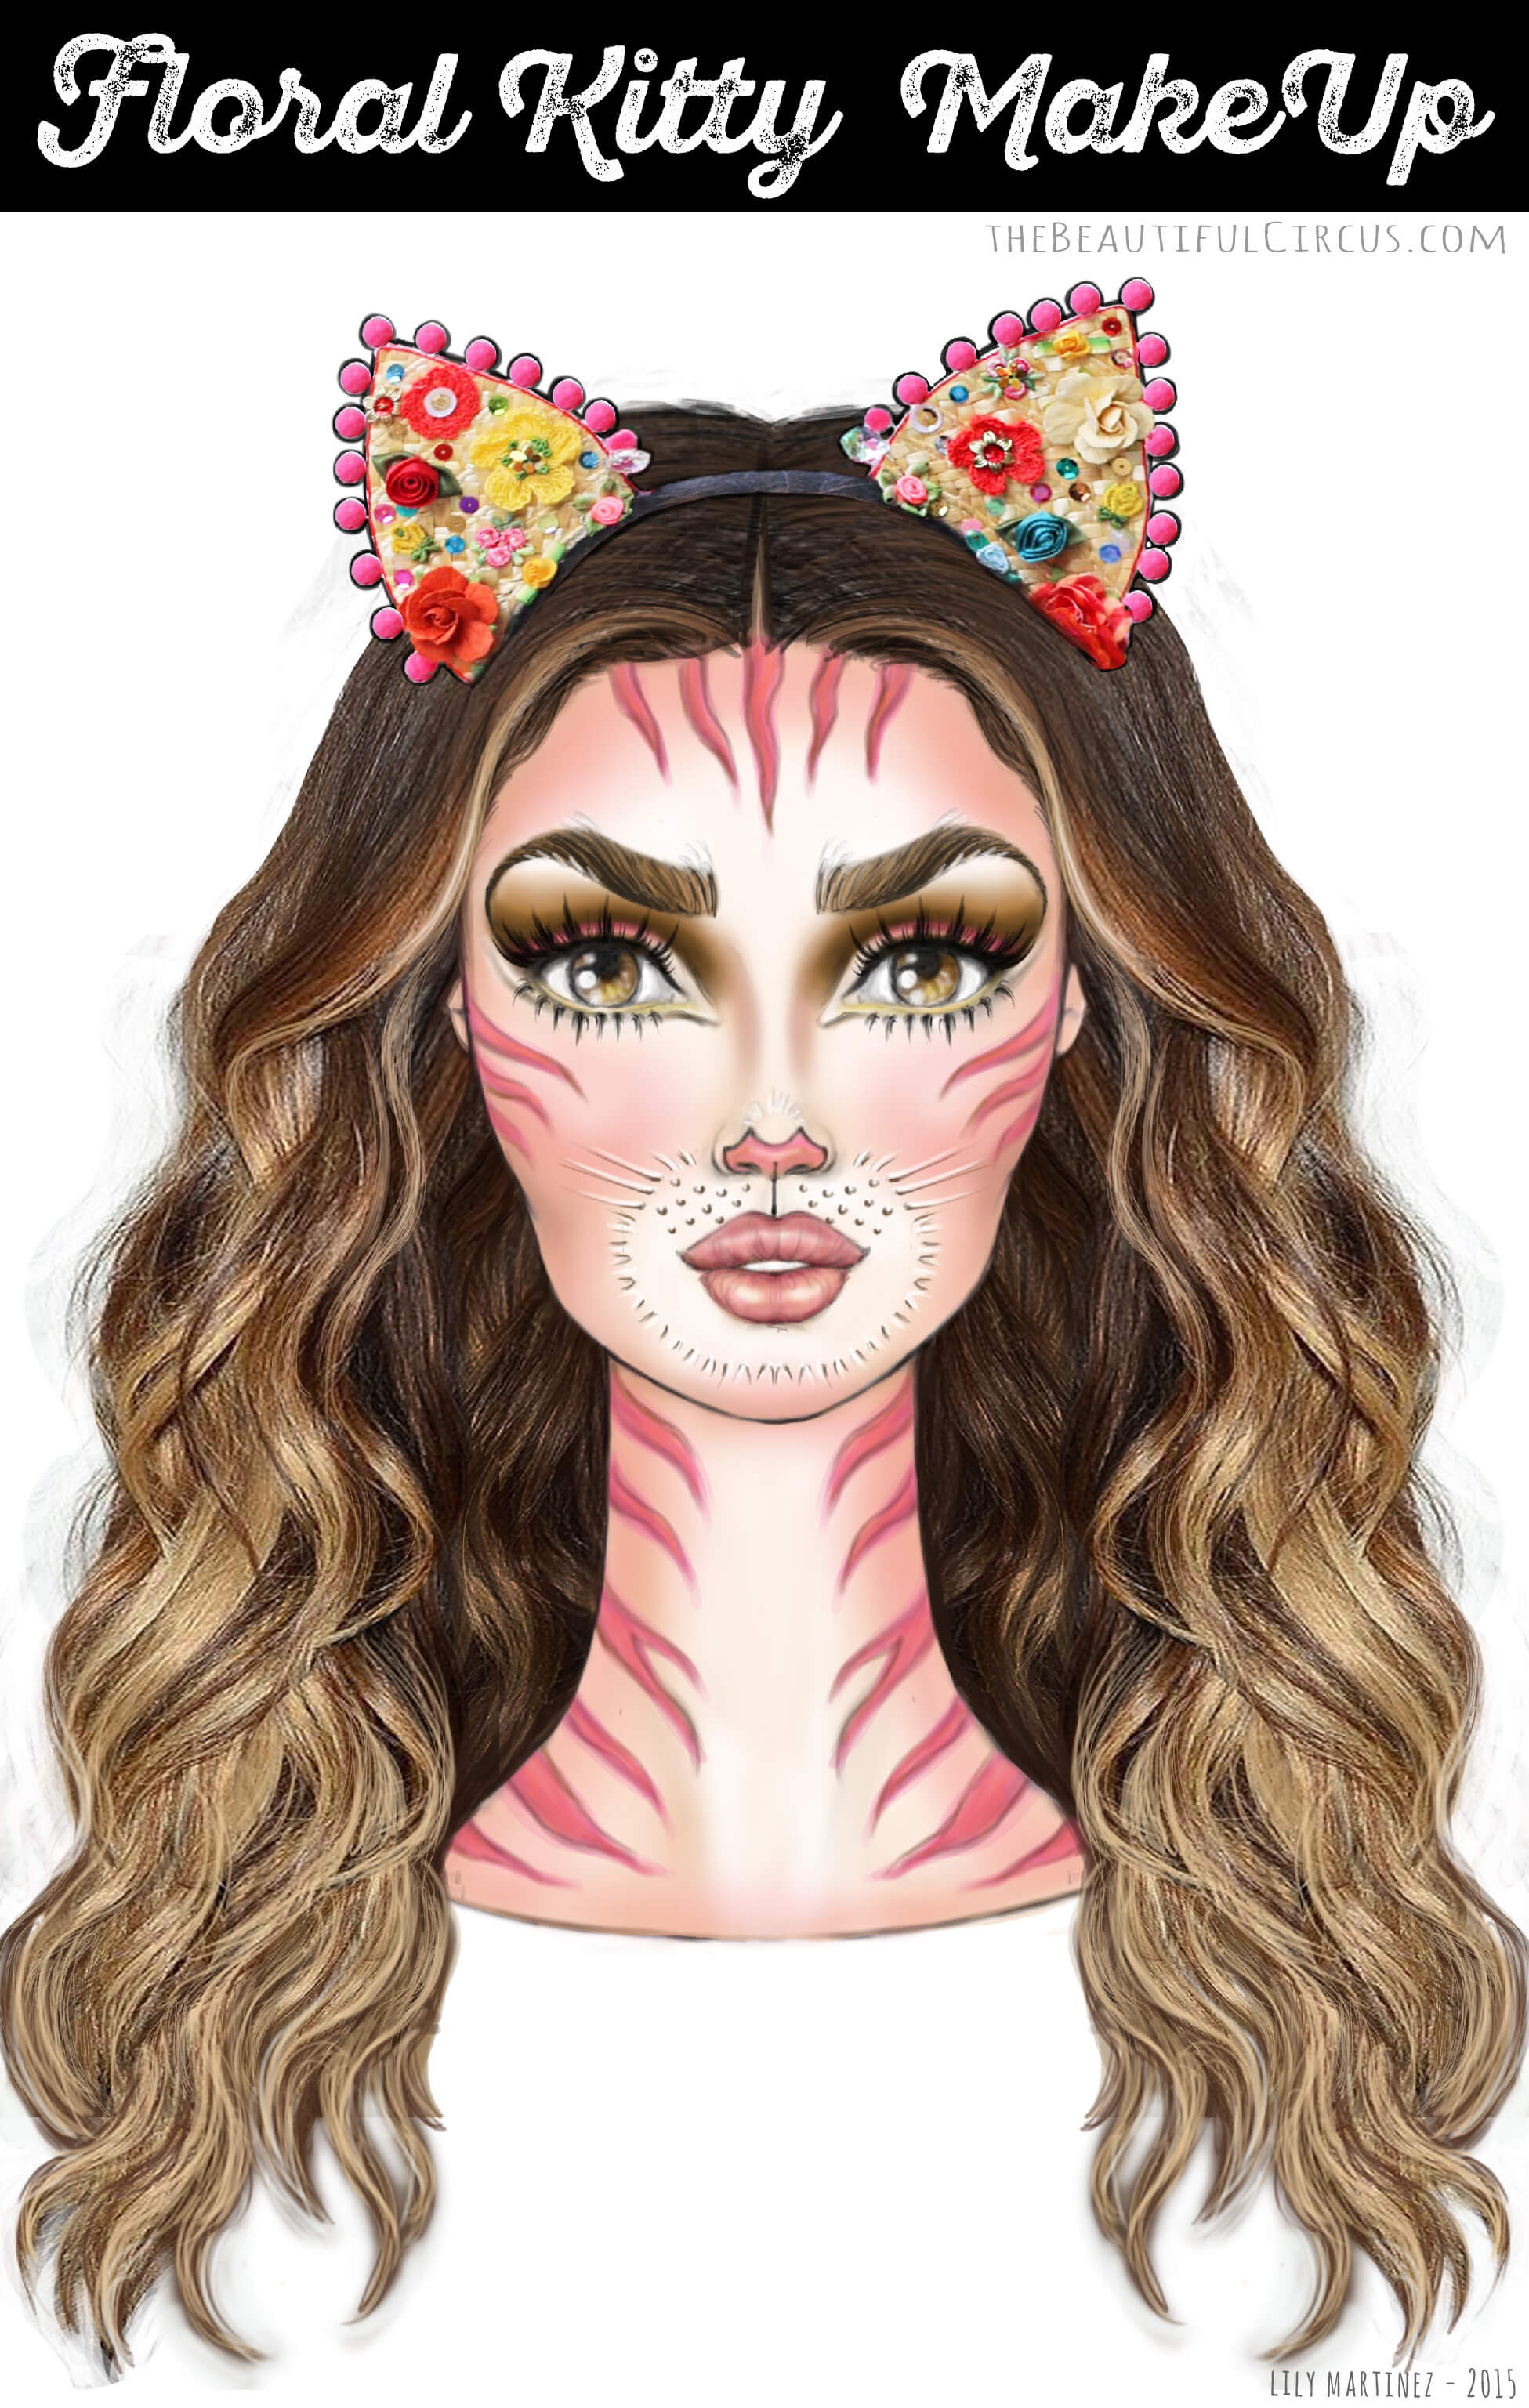 Floral Kitty_MakeUp Look_illustration